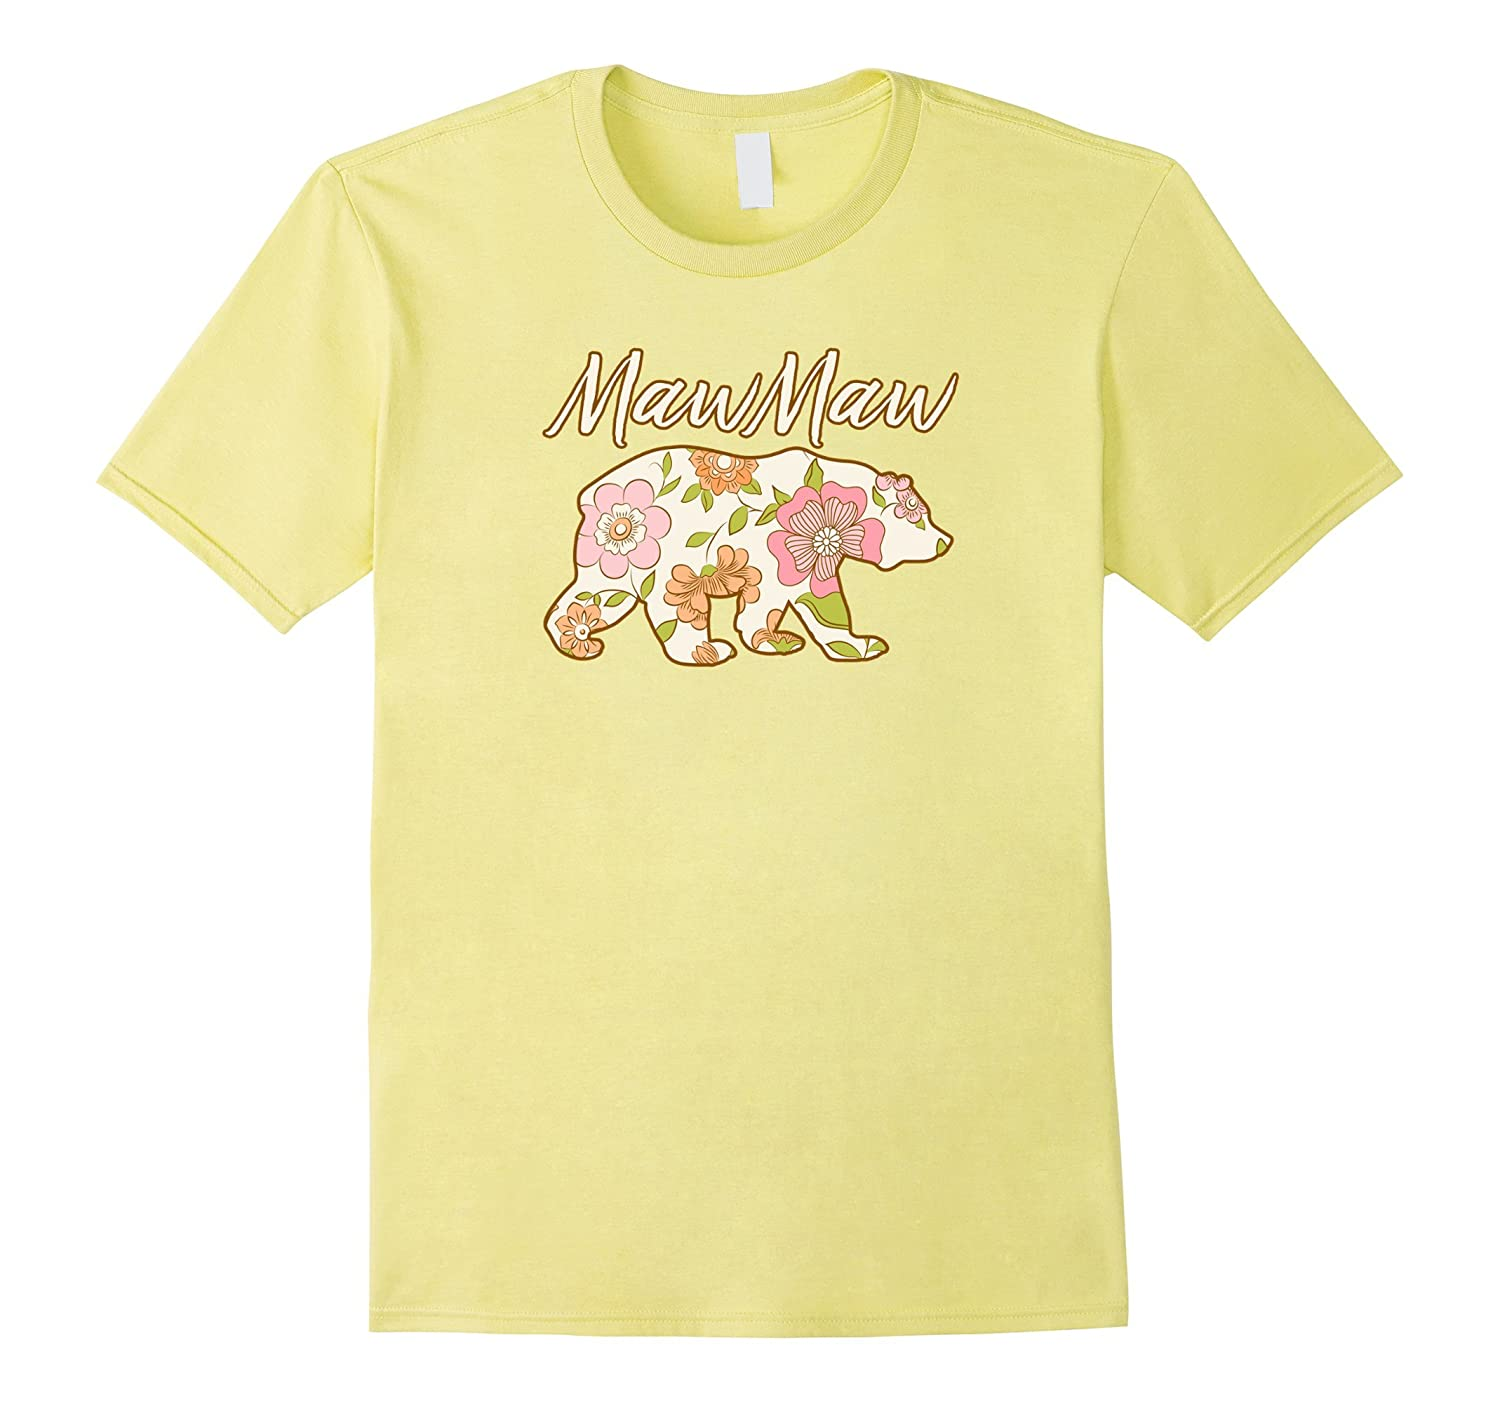 MawMaw Bear Floral T Shirt - Fun Matching Family Gift Tee-CD